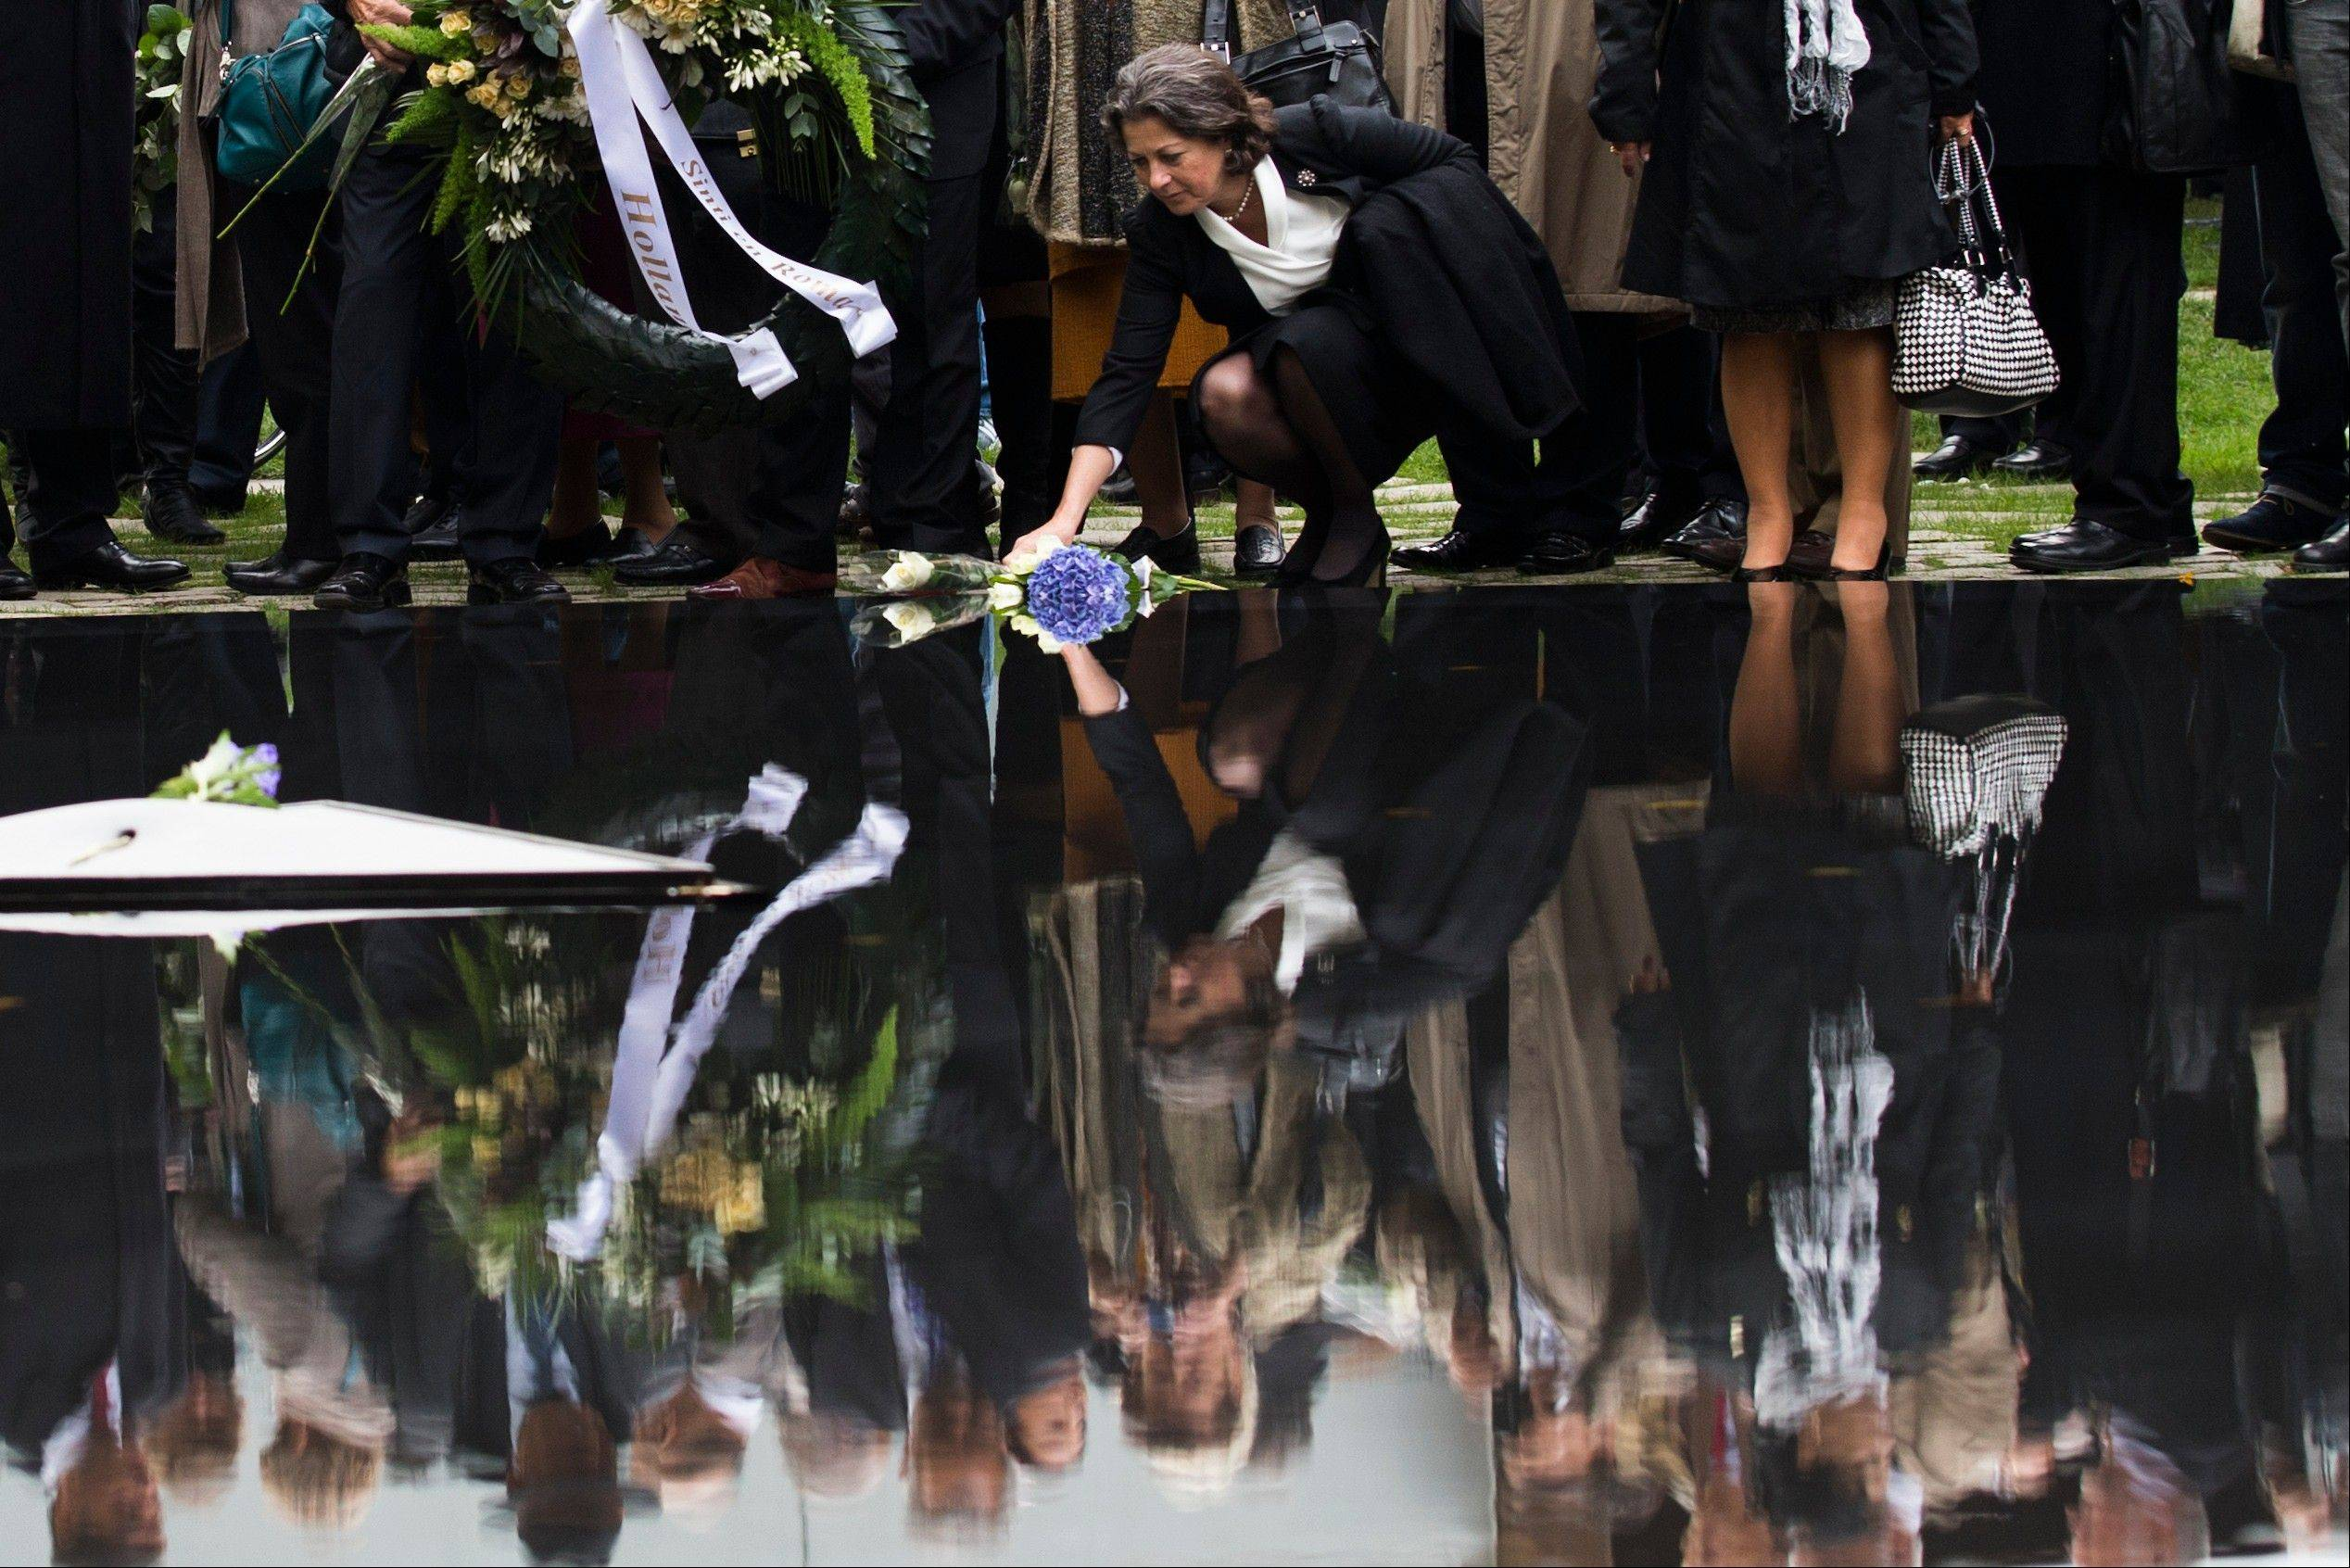 A woman lays down a flower during the inaugural ceremony of the memorial to the murdered European Sinti and Roma who were persecuted as �Gypsies� in Berlin, Wednesday, Oct. 24, 2012. The memorial was designed by artist Dani Karavan consists of a well with a retractable stele with panels carrying information on the persecution and mass murder of this minority under the National Socialist regime.